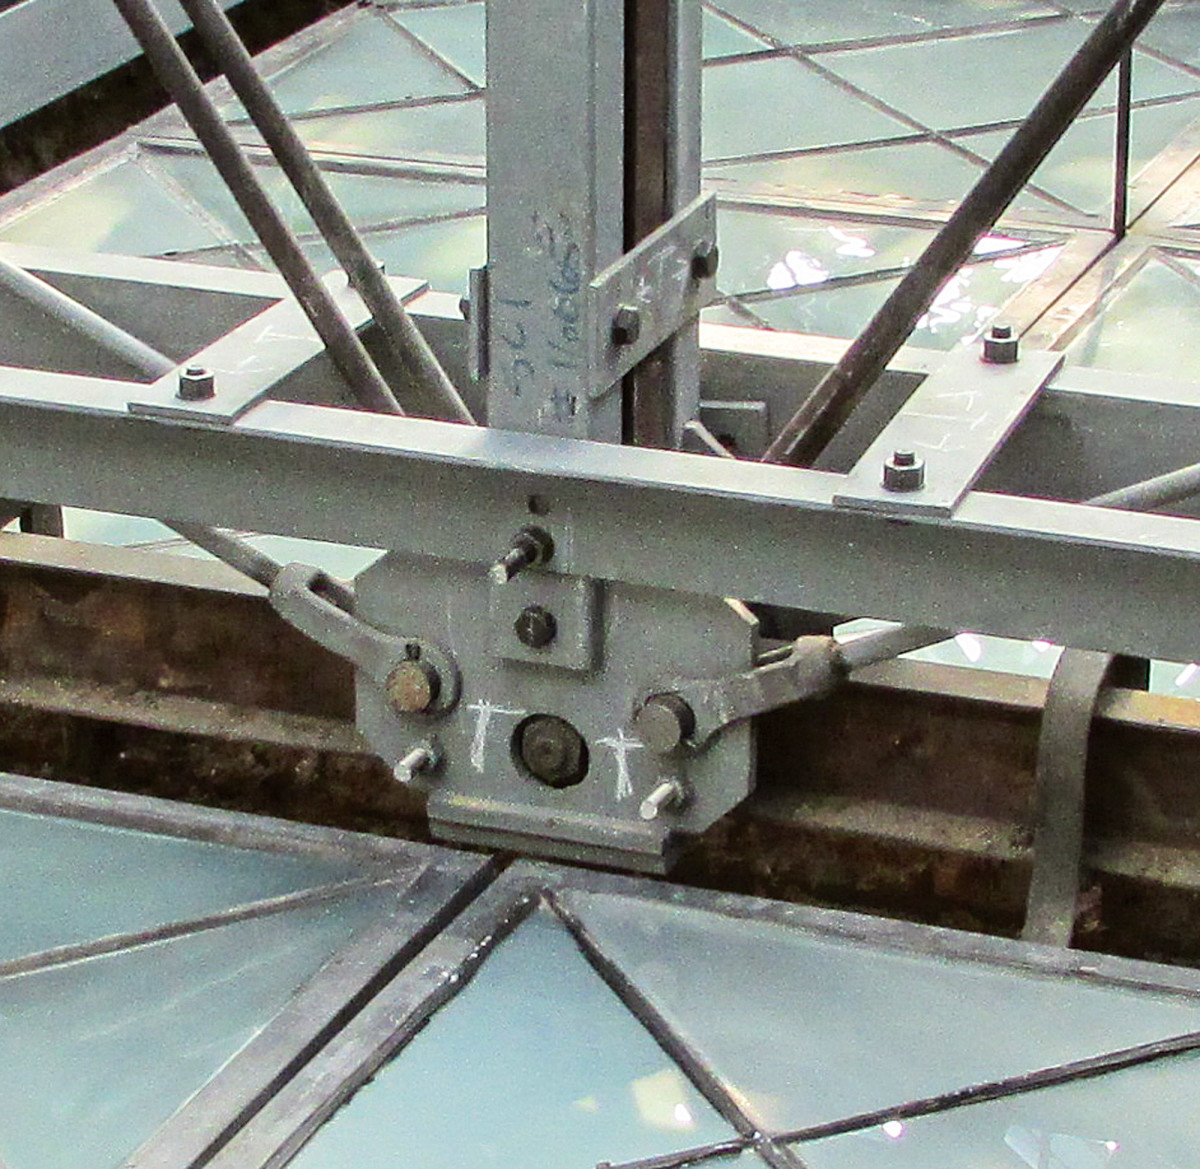 Steel now cradles the historic iron truss providing the capacity to support insulated glass and meet codes for wind, snow, and uneven snow loads.